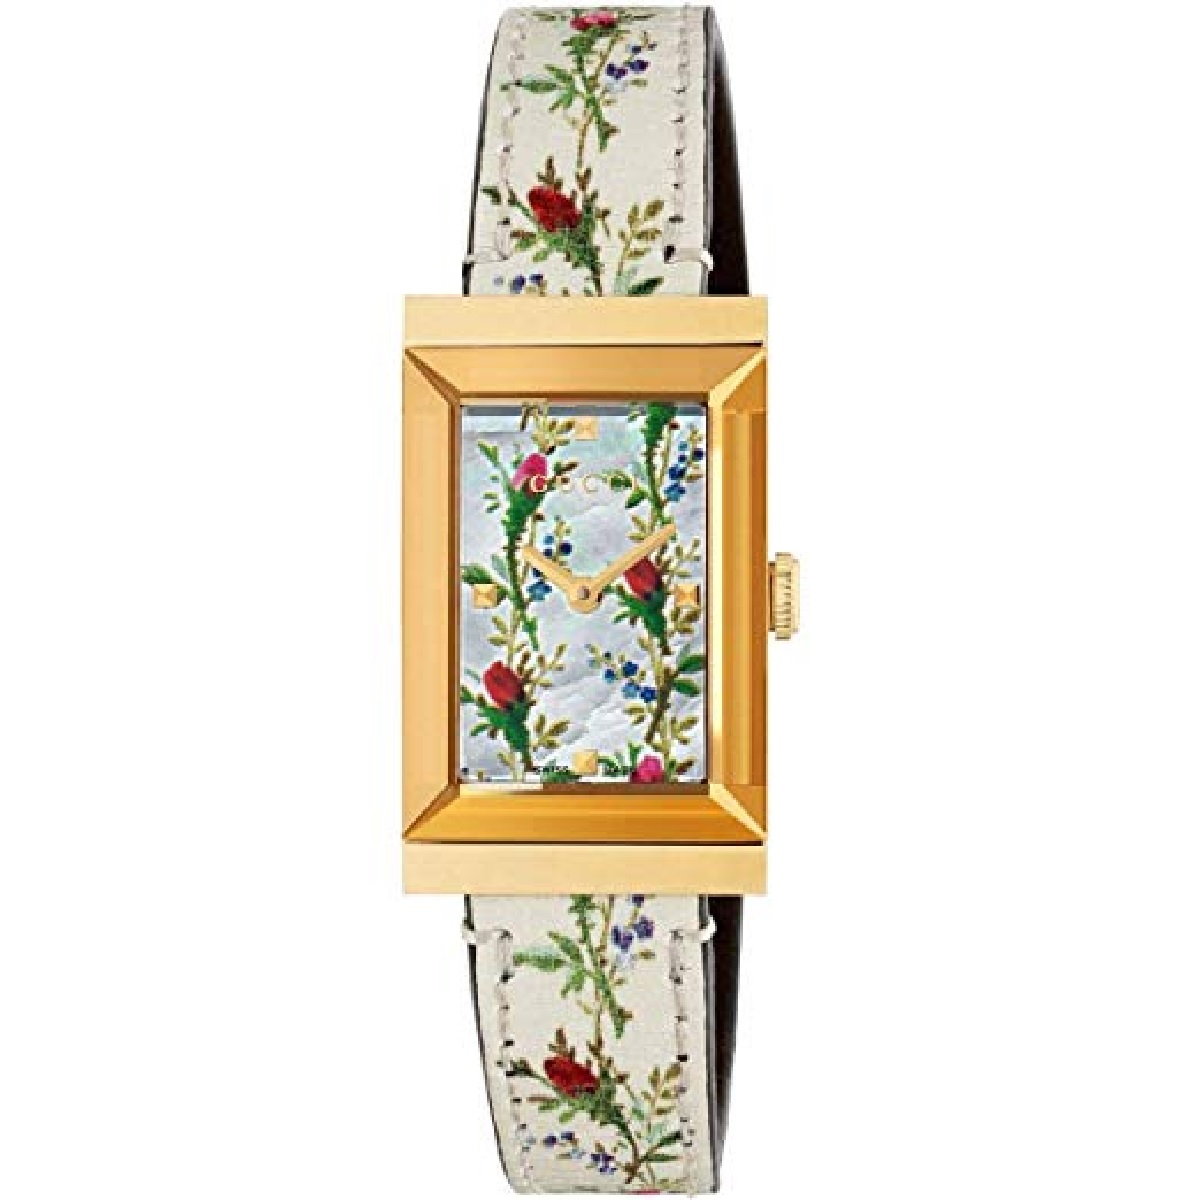 Gucci watch women's g-frame 21x34 mm floral pattern YA147407